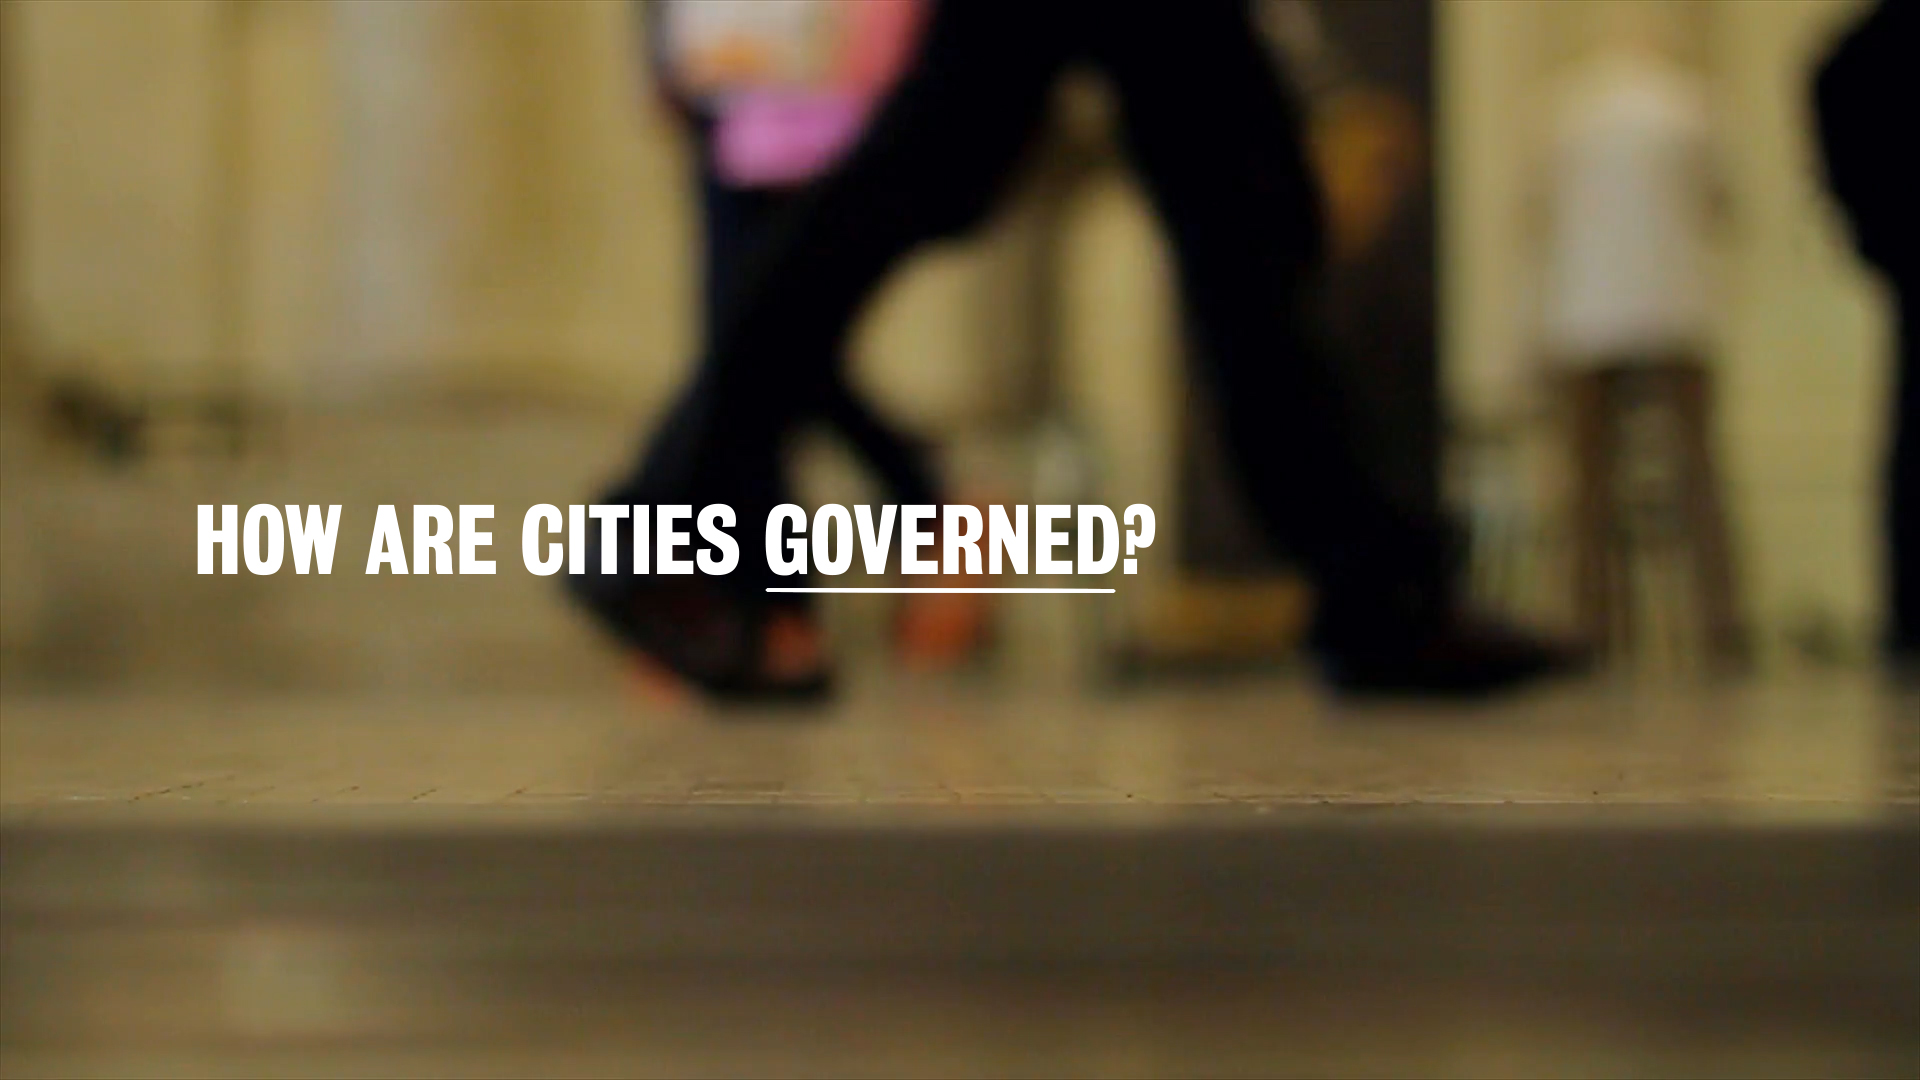 New Urban Governance you tube intro image people walking